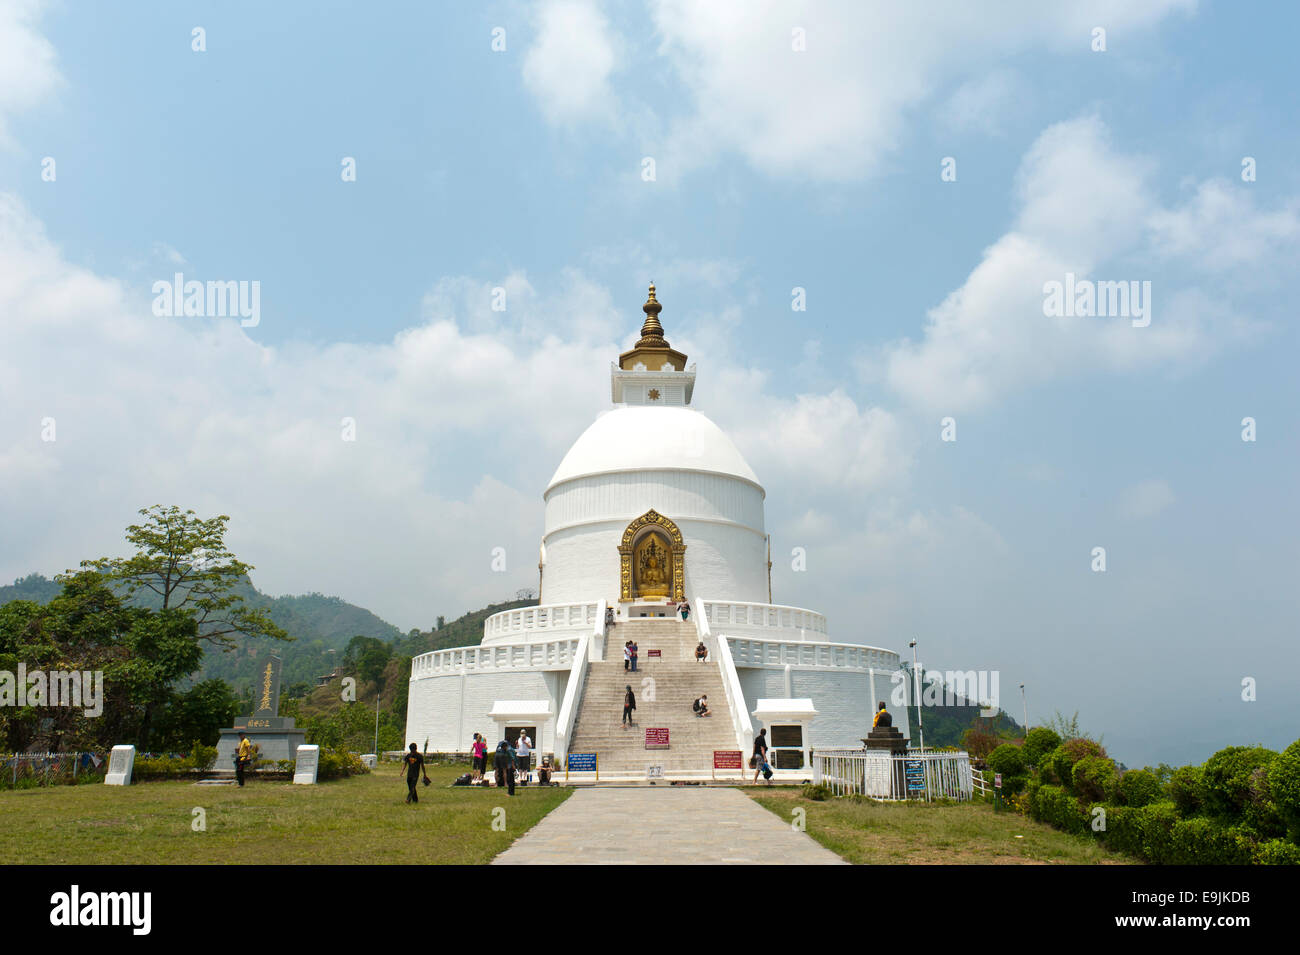 World Peace Stupa, new white stupa, Pokhara, Nepal - Stock Image